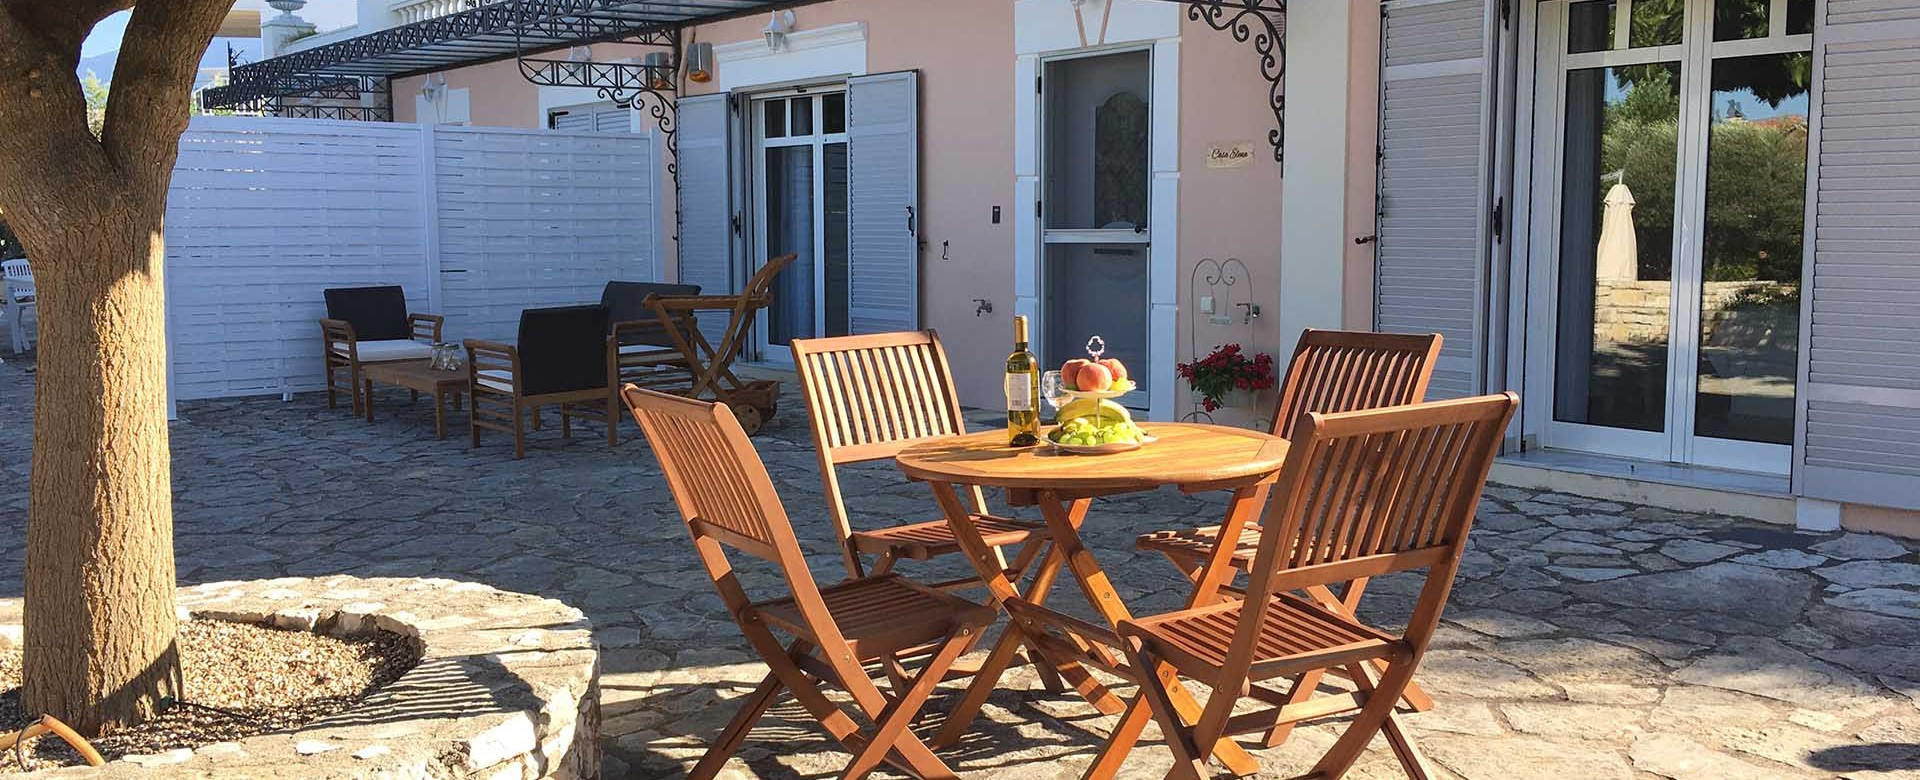 Relax in the evening sun with great company right outside Casa Elena, Melissani Apartments, Karavomilos, Kefalonia, Greek Islands